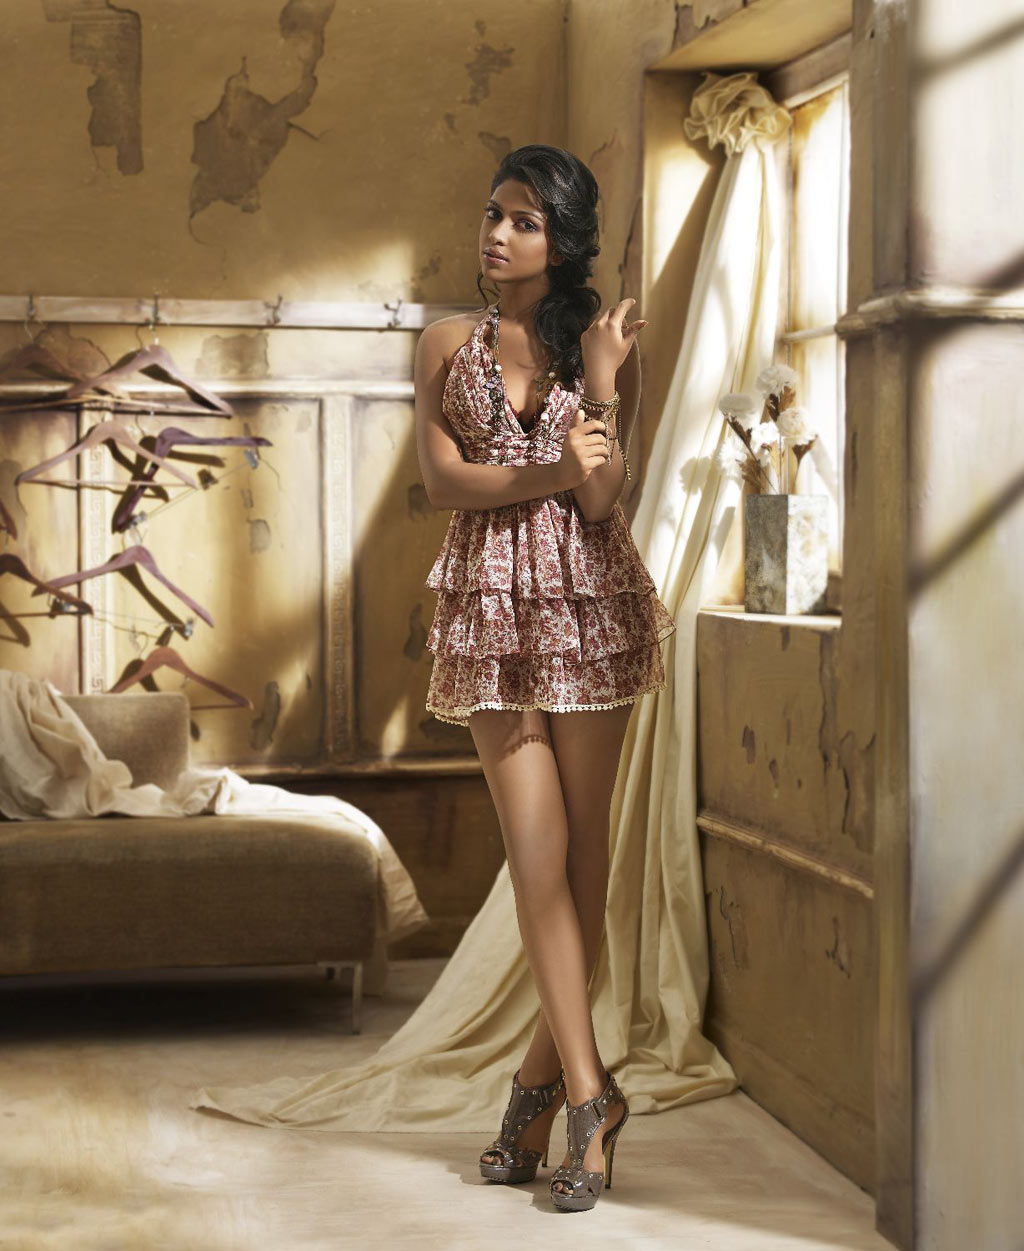 Amala Paul Calendar Pic1 - Amala Paul Venkatram 2012 Calendar Hot Photoshoot